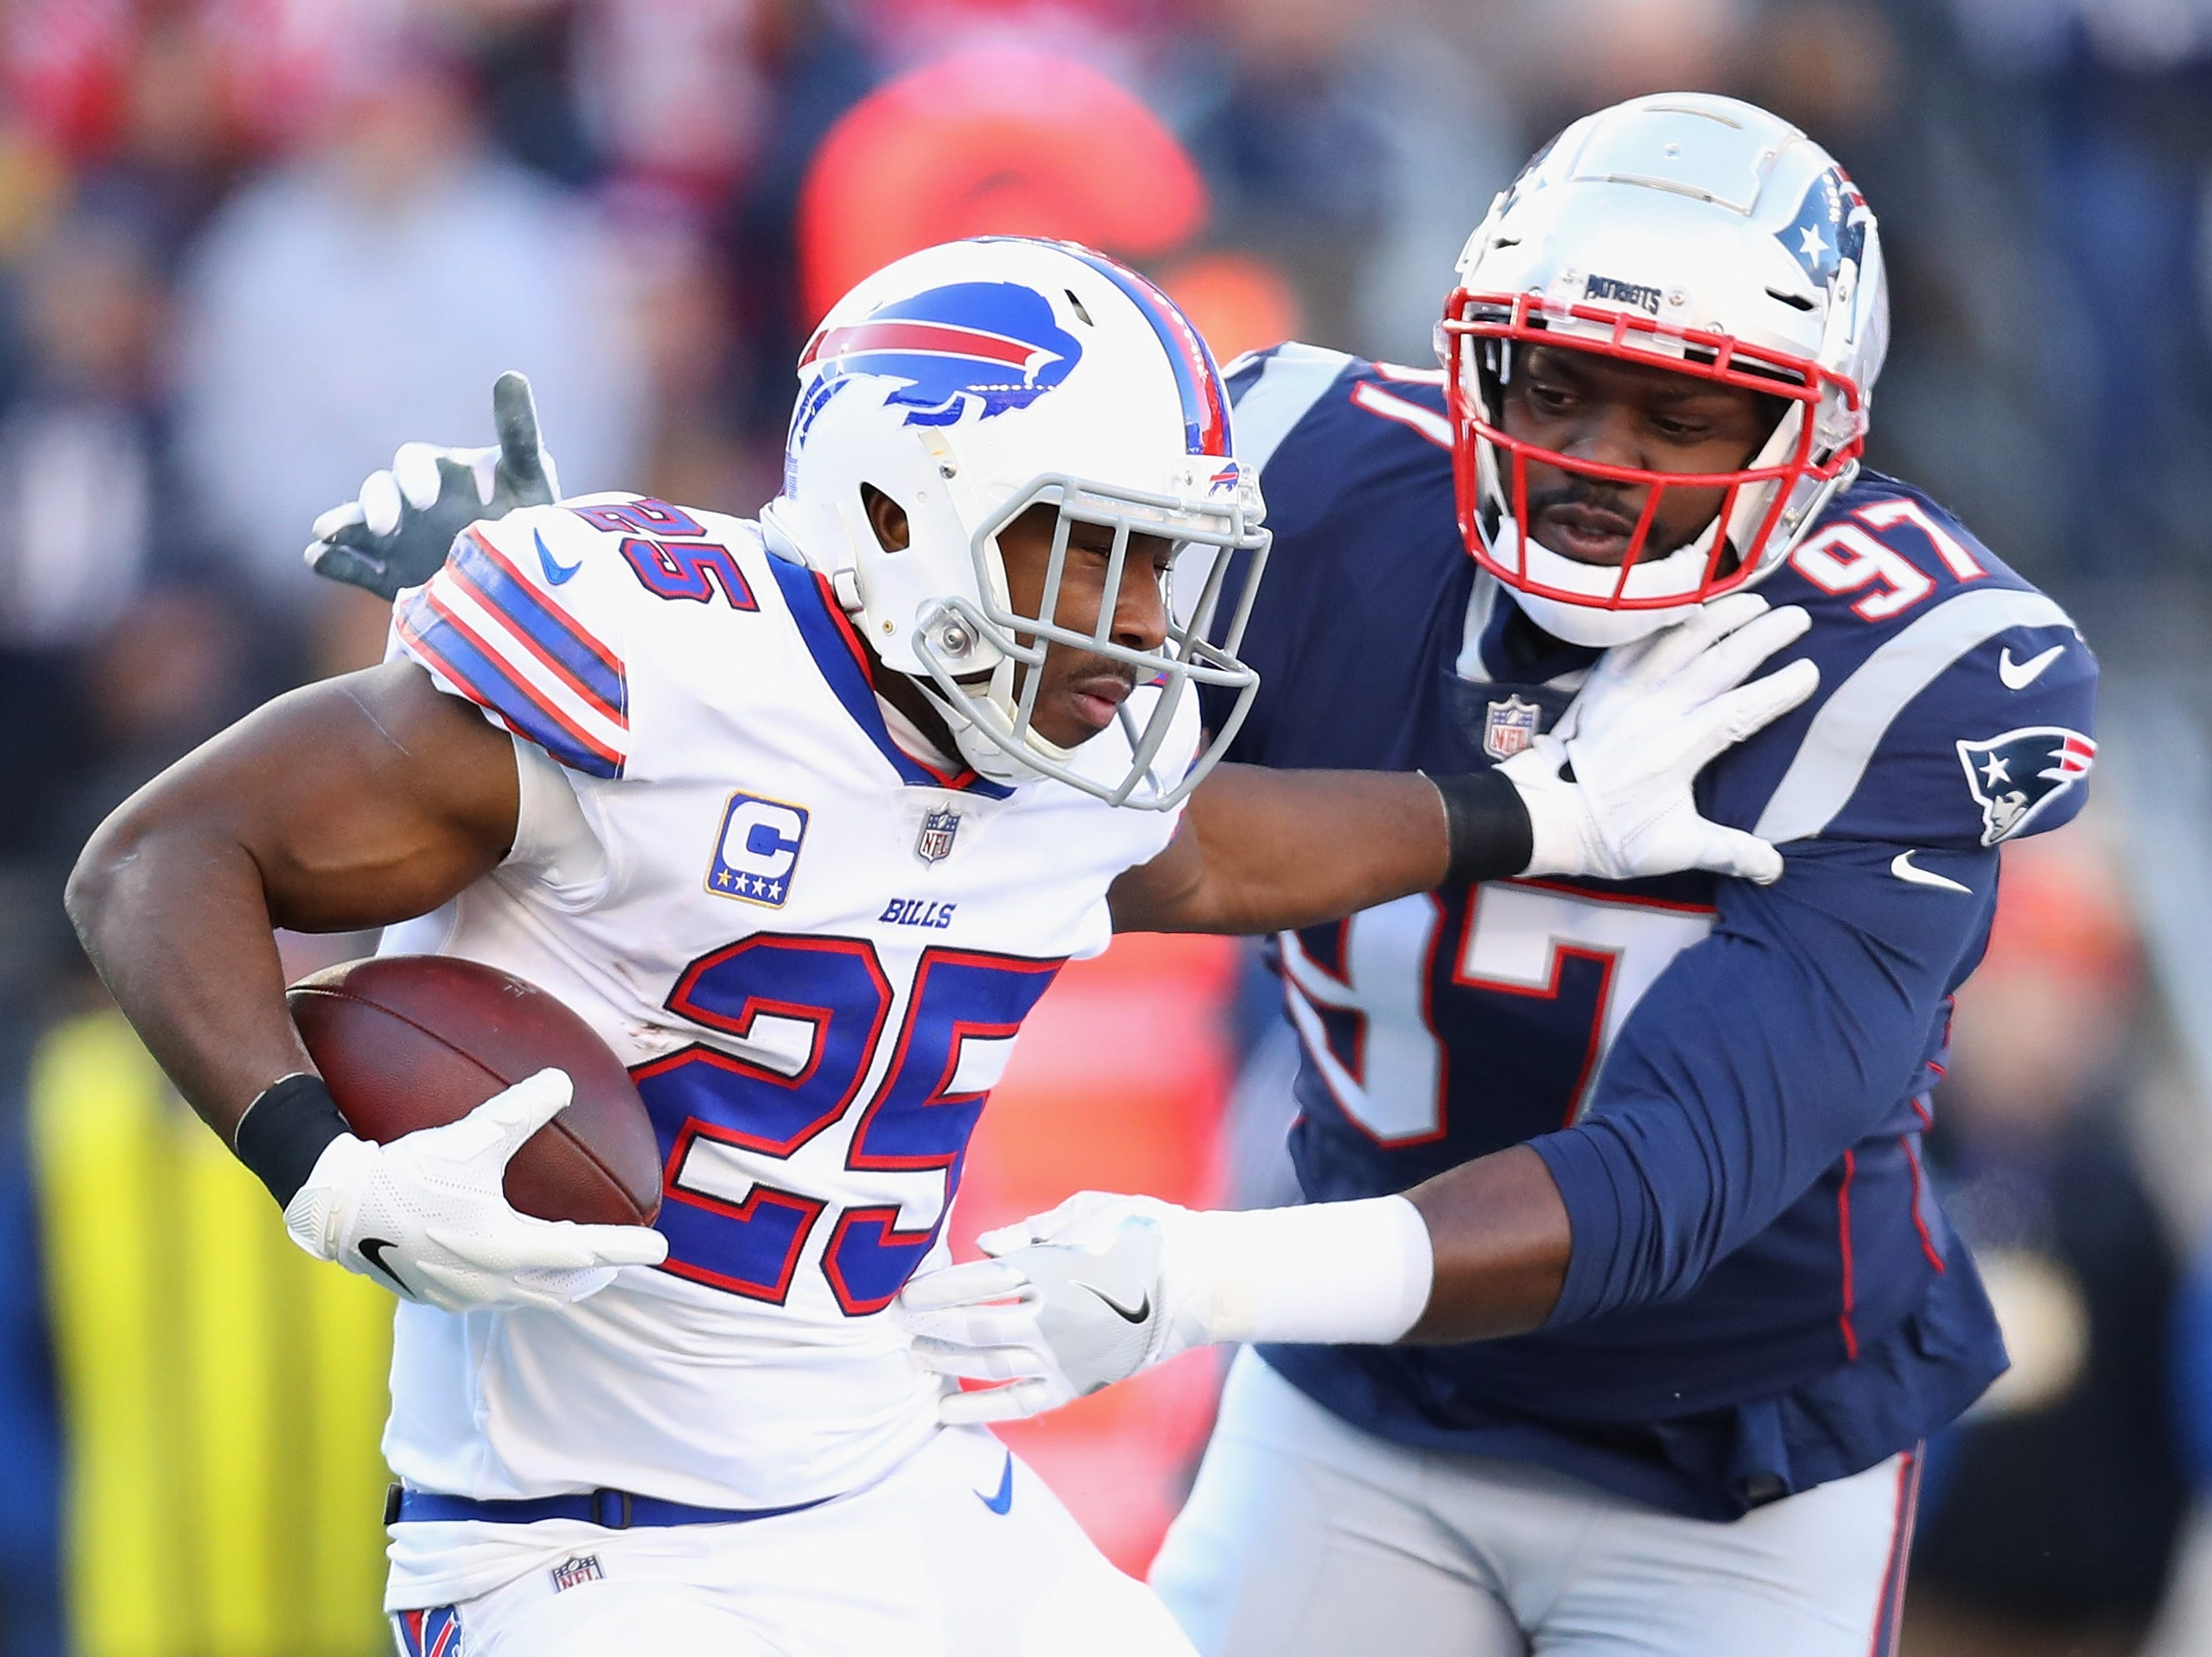 FOXBOROUGH, MA - DECEMBER 23:  Ufomba Kamalu #97 of the New England Patriots attempts to tackle LeSean McCoy #25 of the Buffalo Bills during the first half at Gillette Stadium on December 23, 2018 in Foxborough, Massachusetts.  (Photo by Maddie Meyer/Getty Images)